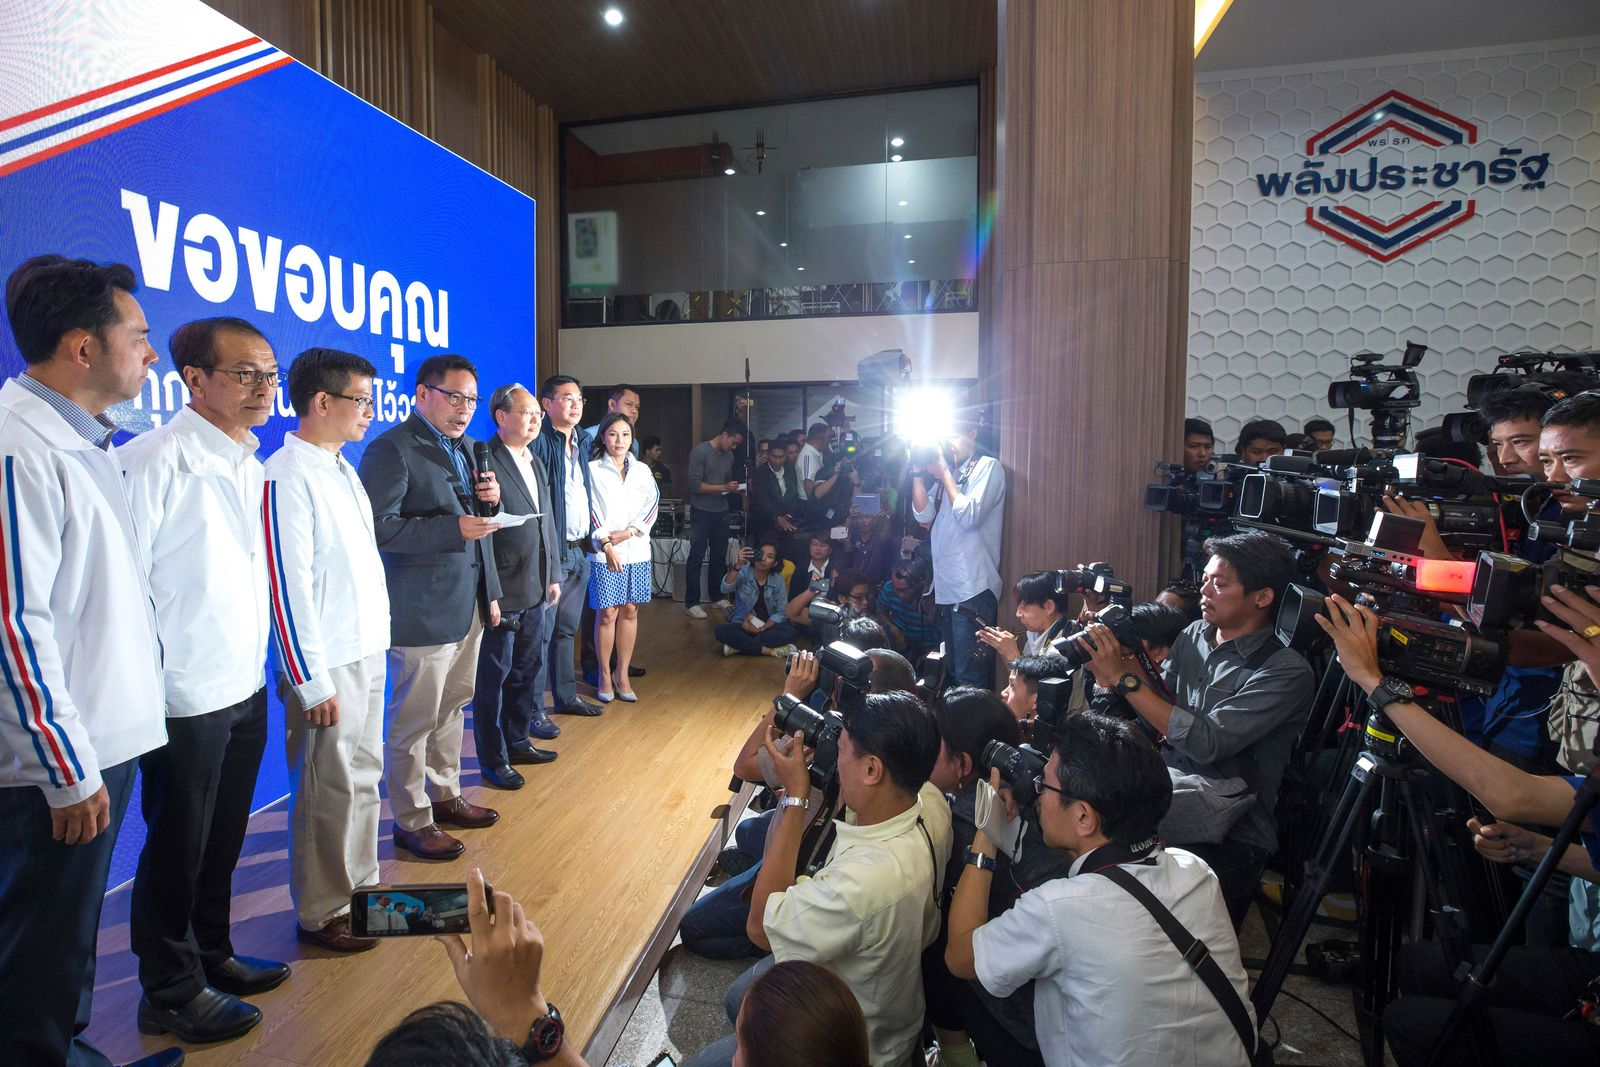 Thailand's Palang Pracharat Party leader Uttama Savanayana, center with a microphone in his hand speaks during a press conference in Bangkok, Thailand, Monday, March 25, 2019. The Election Commission announced the results of 350 constituency races but full vote counts, which are needed to determine the allocation of 150 other seats in the House of Representatives, won't be available until Friday. (AP Photo/Wason Wanichakorn)